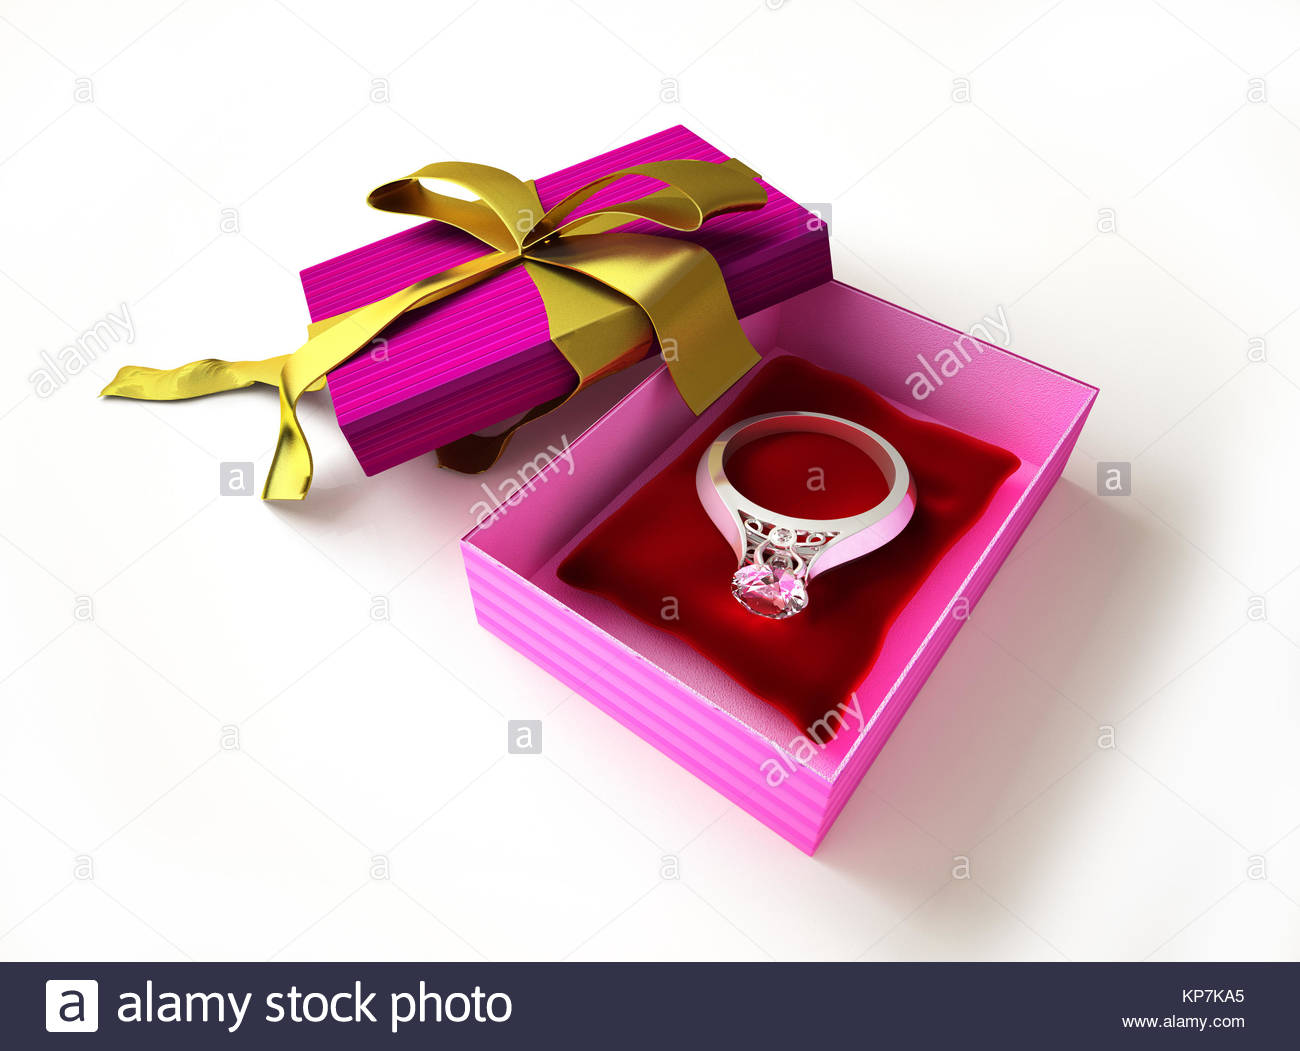 Ring Red Stone Gold Stock Photos & Ring Red Stone Gold Stock Images ...